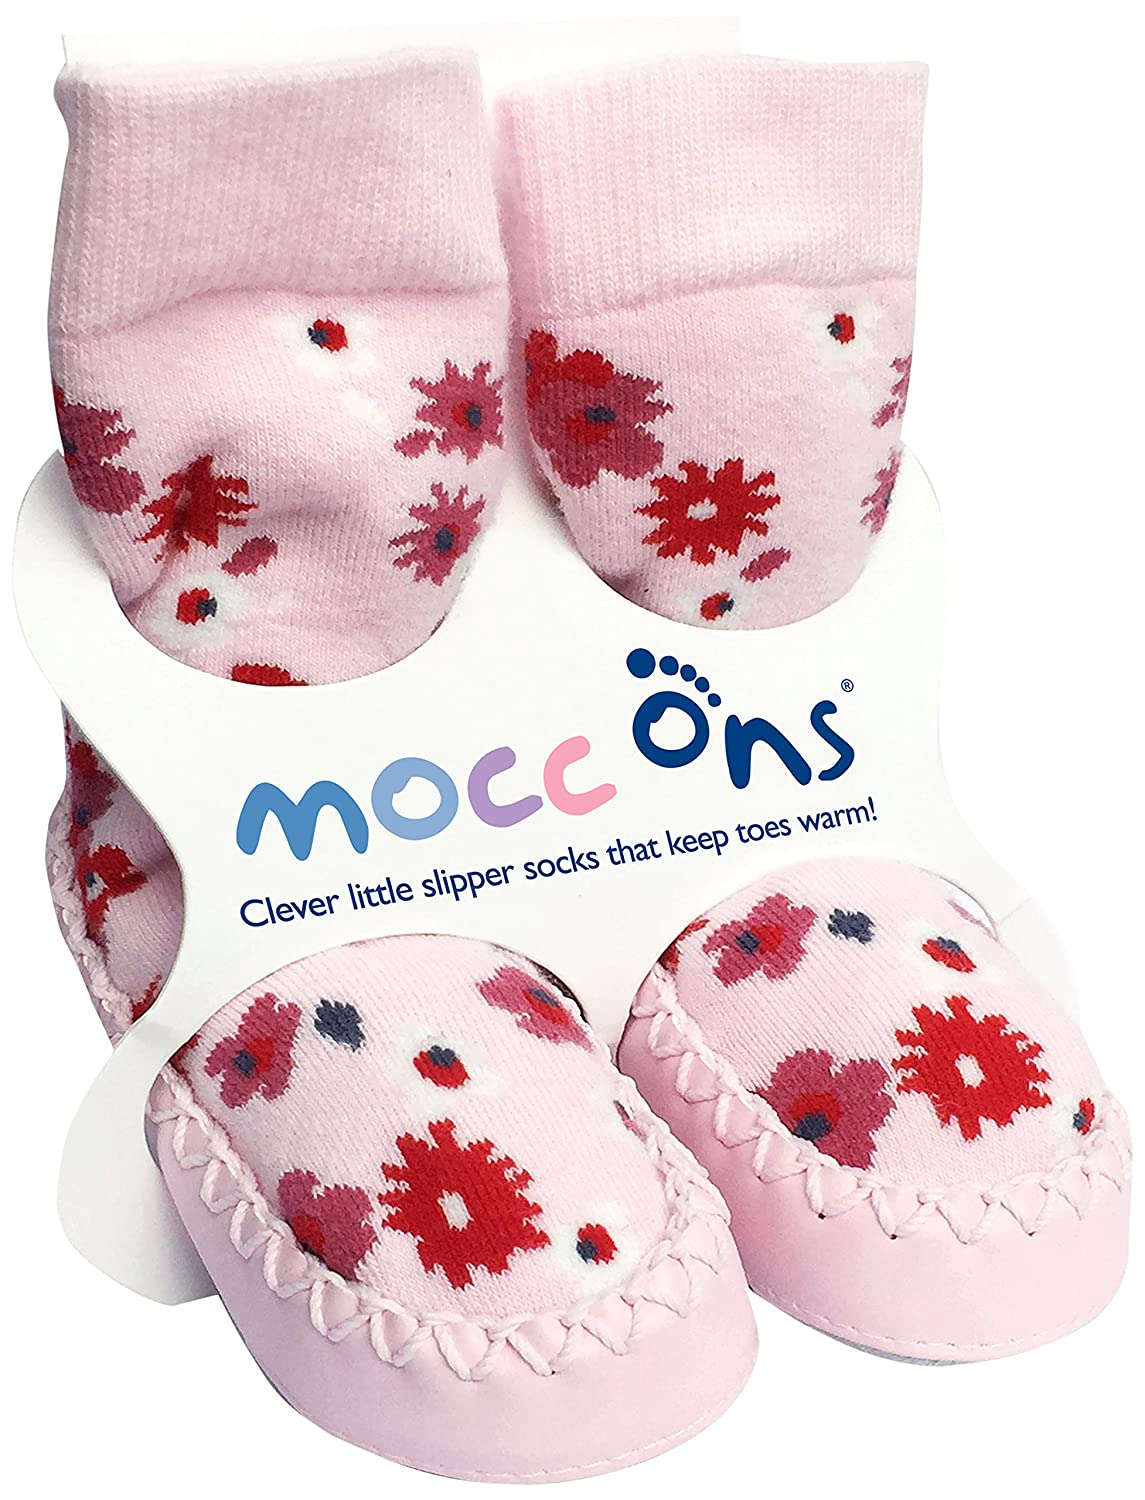 Mocc Ons Cute Moccasin Style Slipper Socks, Floral Ditsy - 6-12 Months MOCCONFD6-12